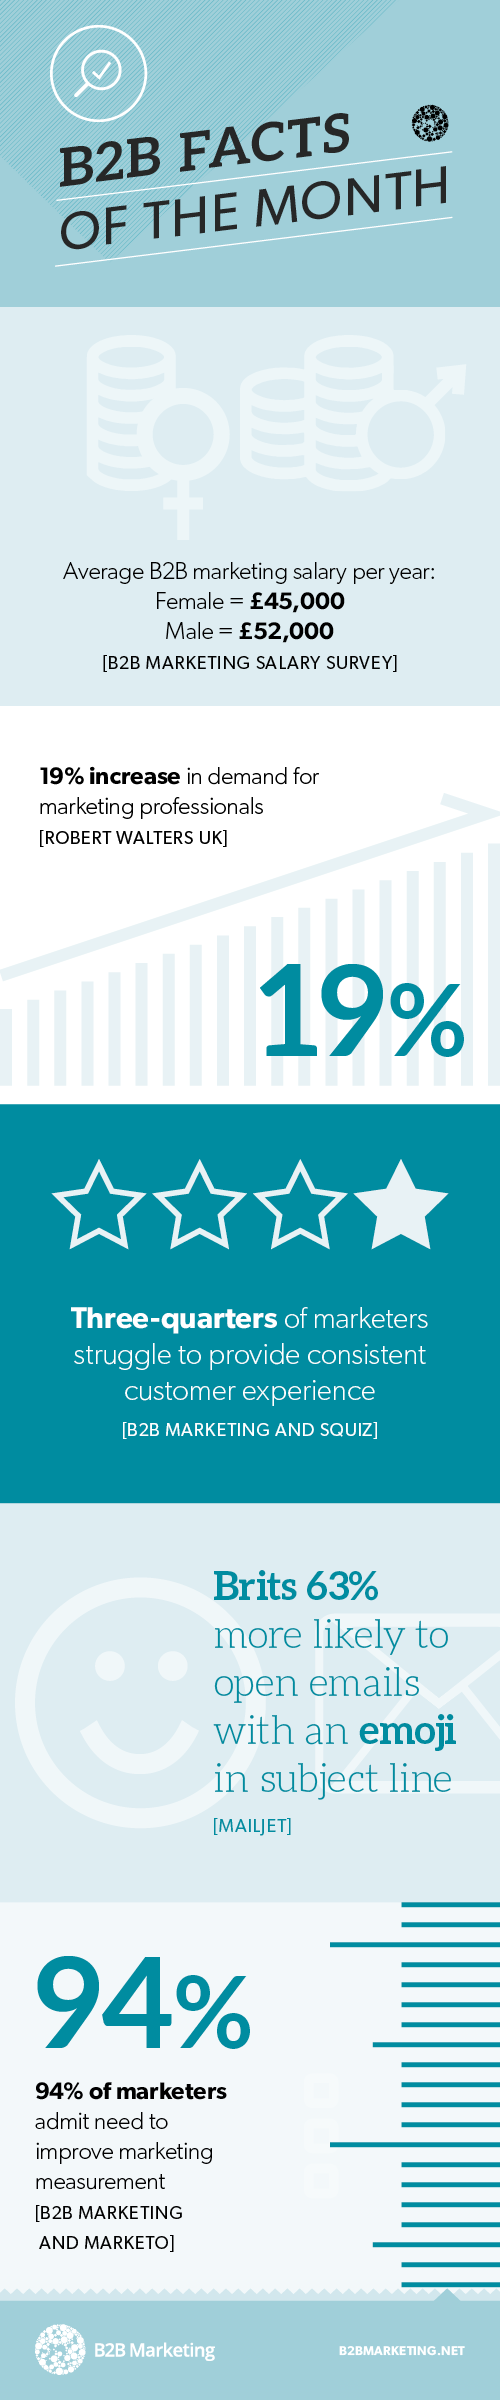 Infographic: B2B marketing facts of month